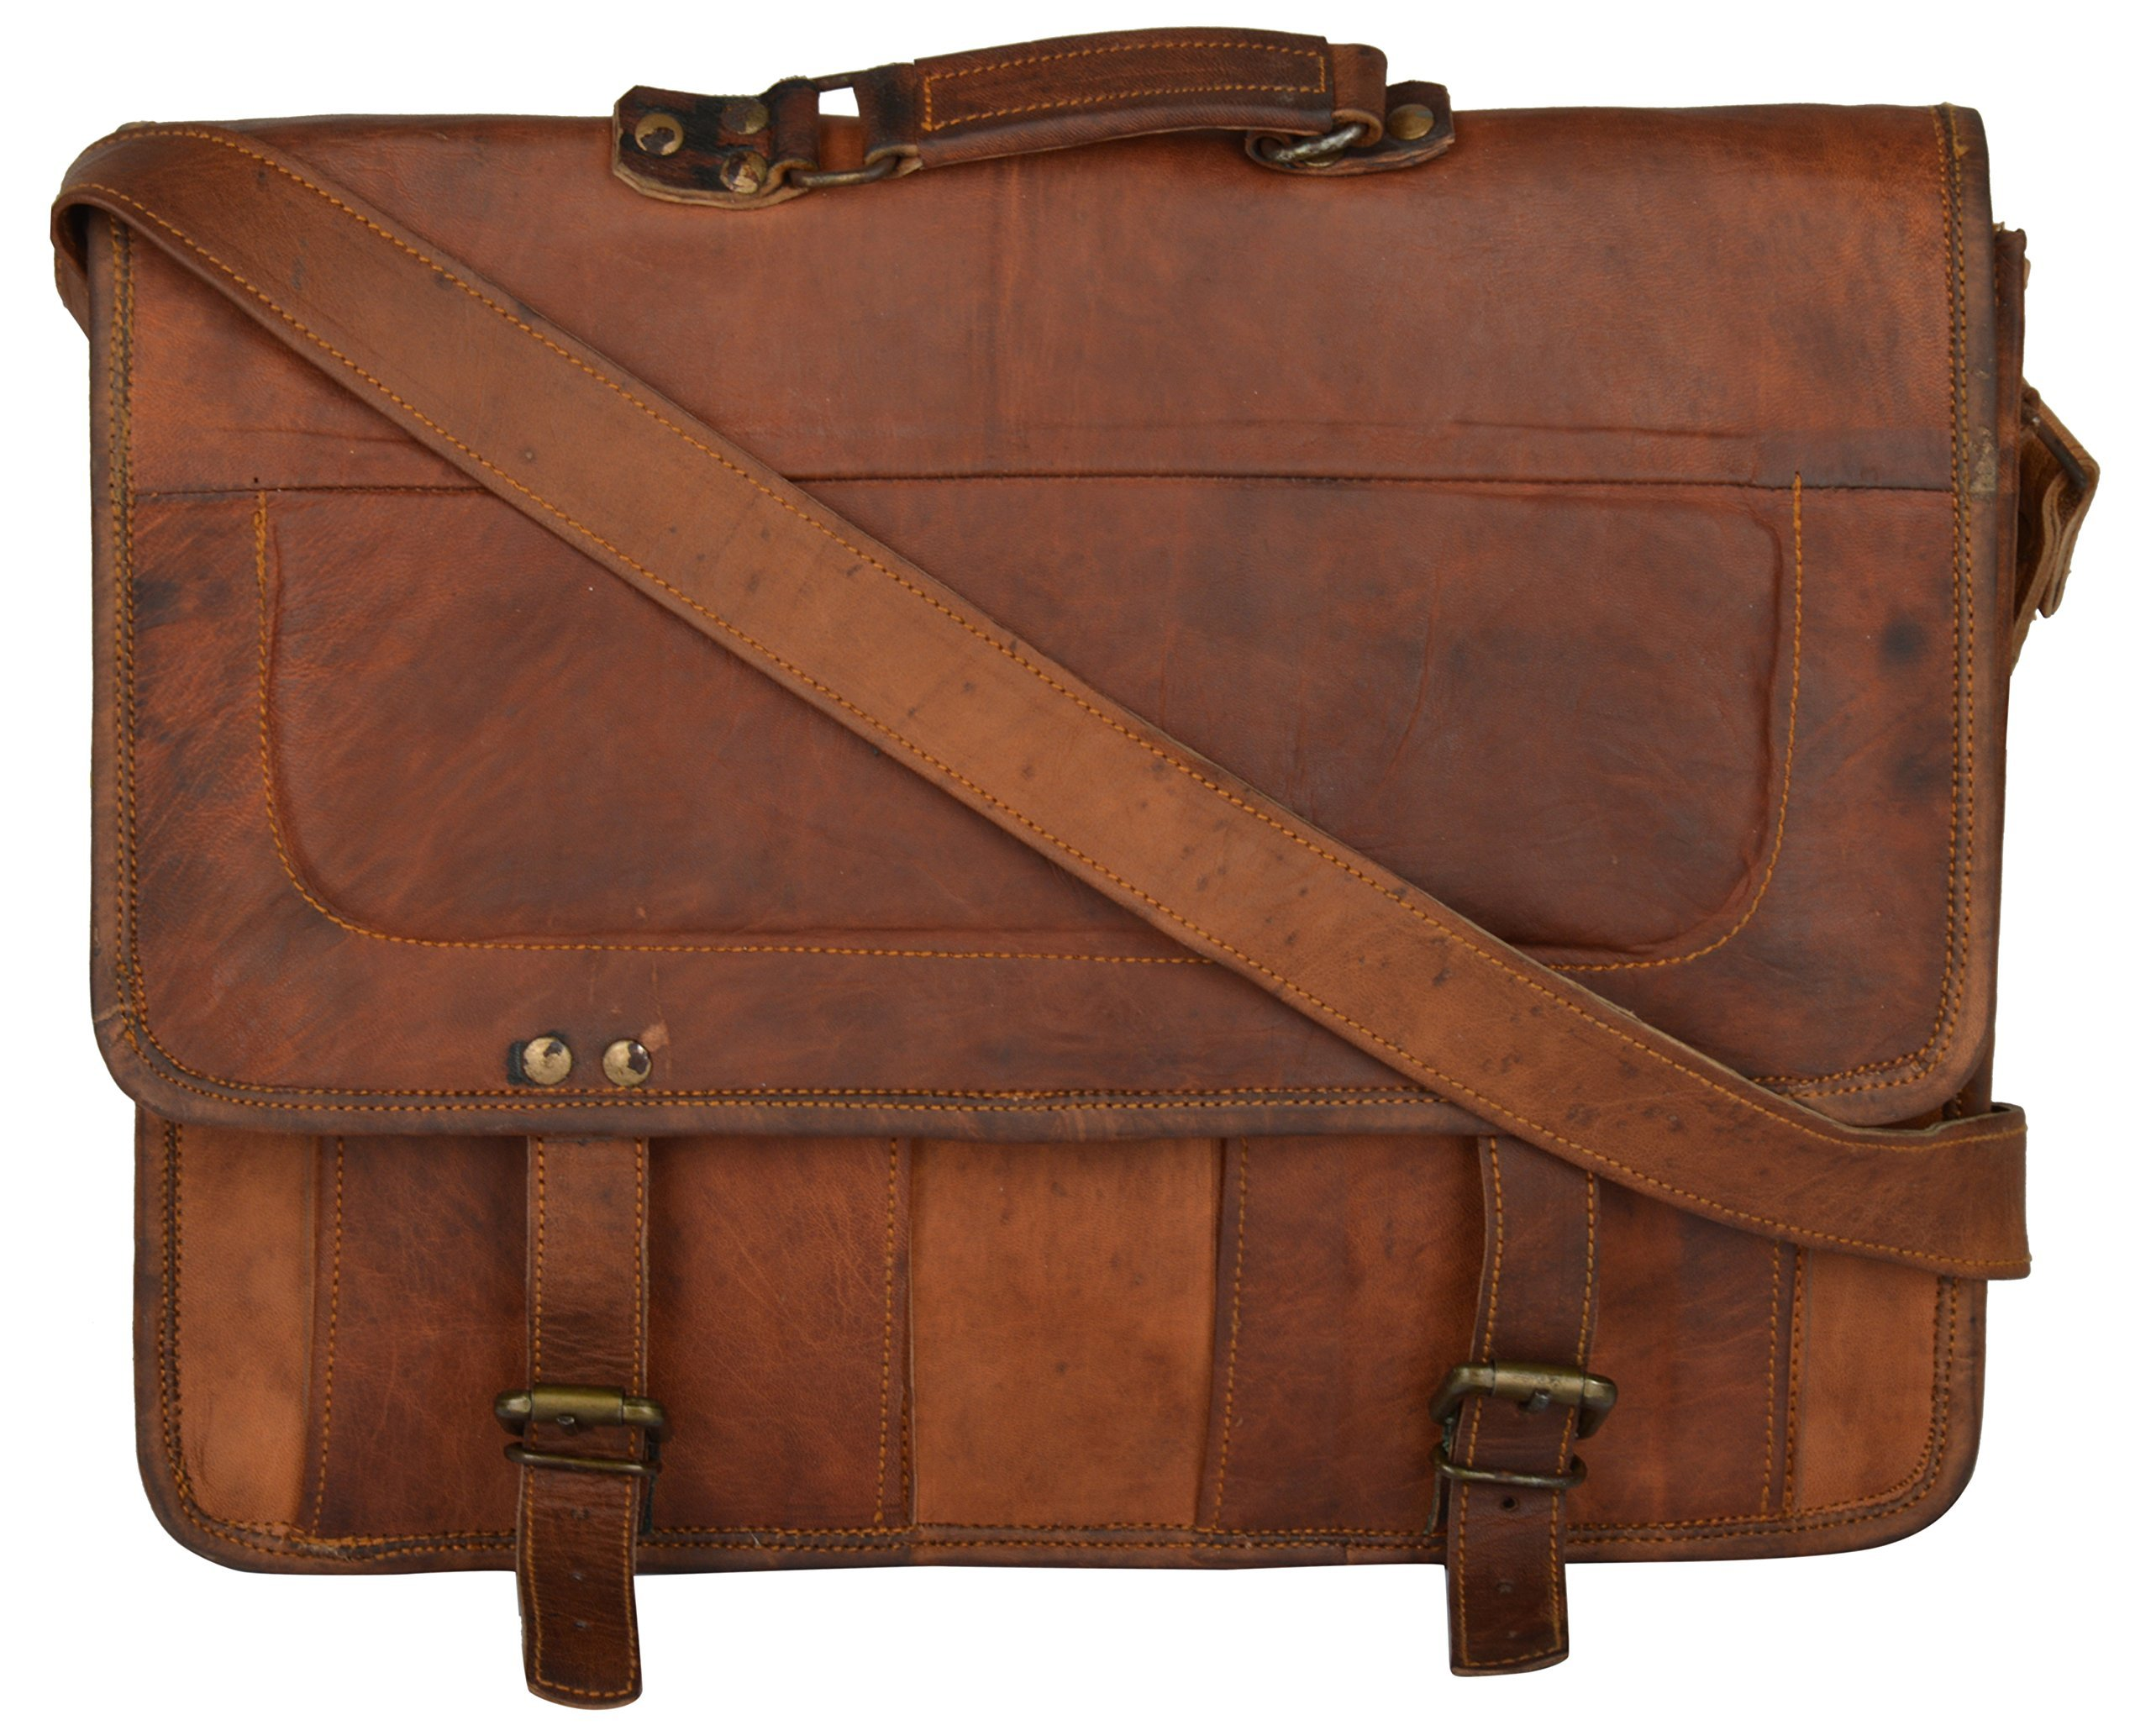 Handcrafted exports Men's Leather Laptop Messenger Bag 8 Liters 18'' Brown